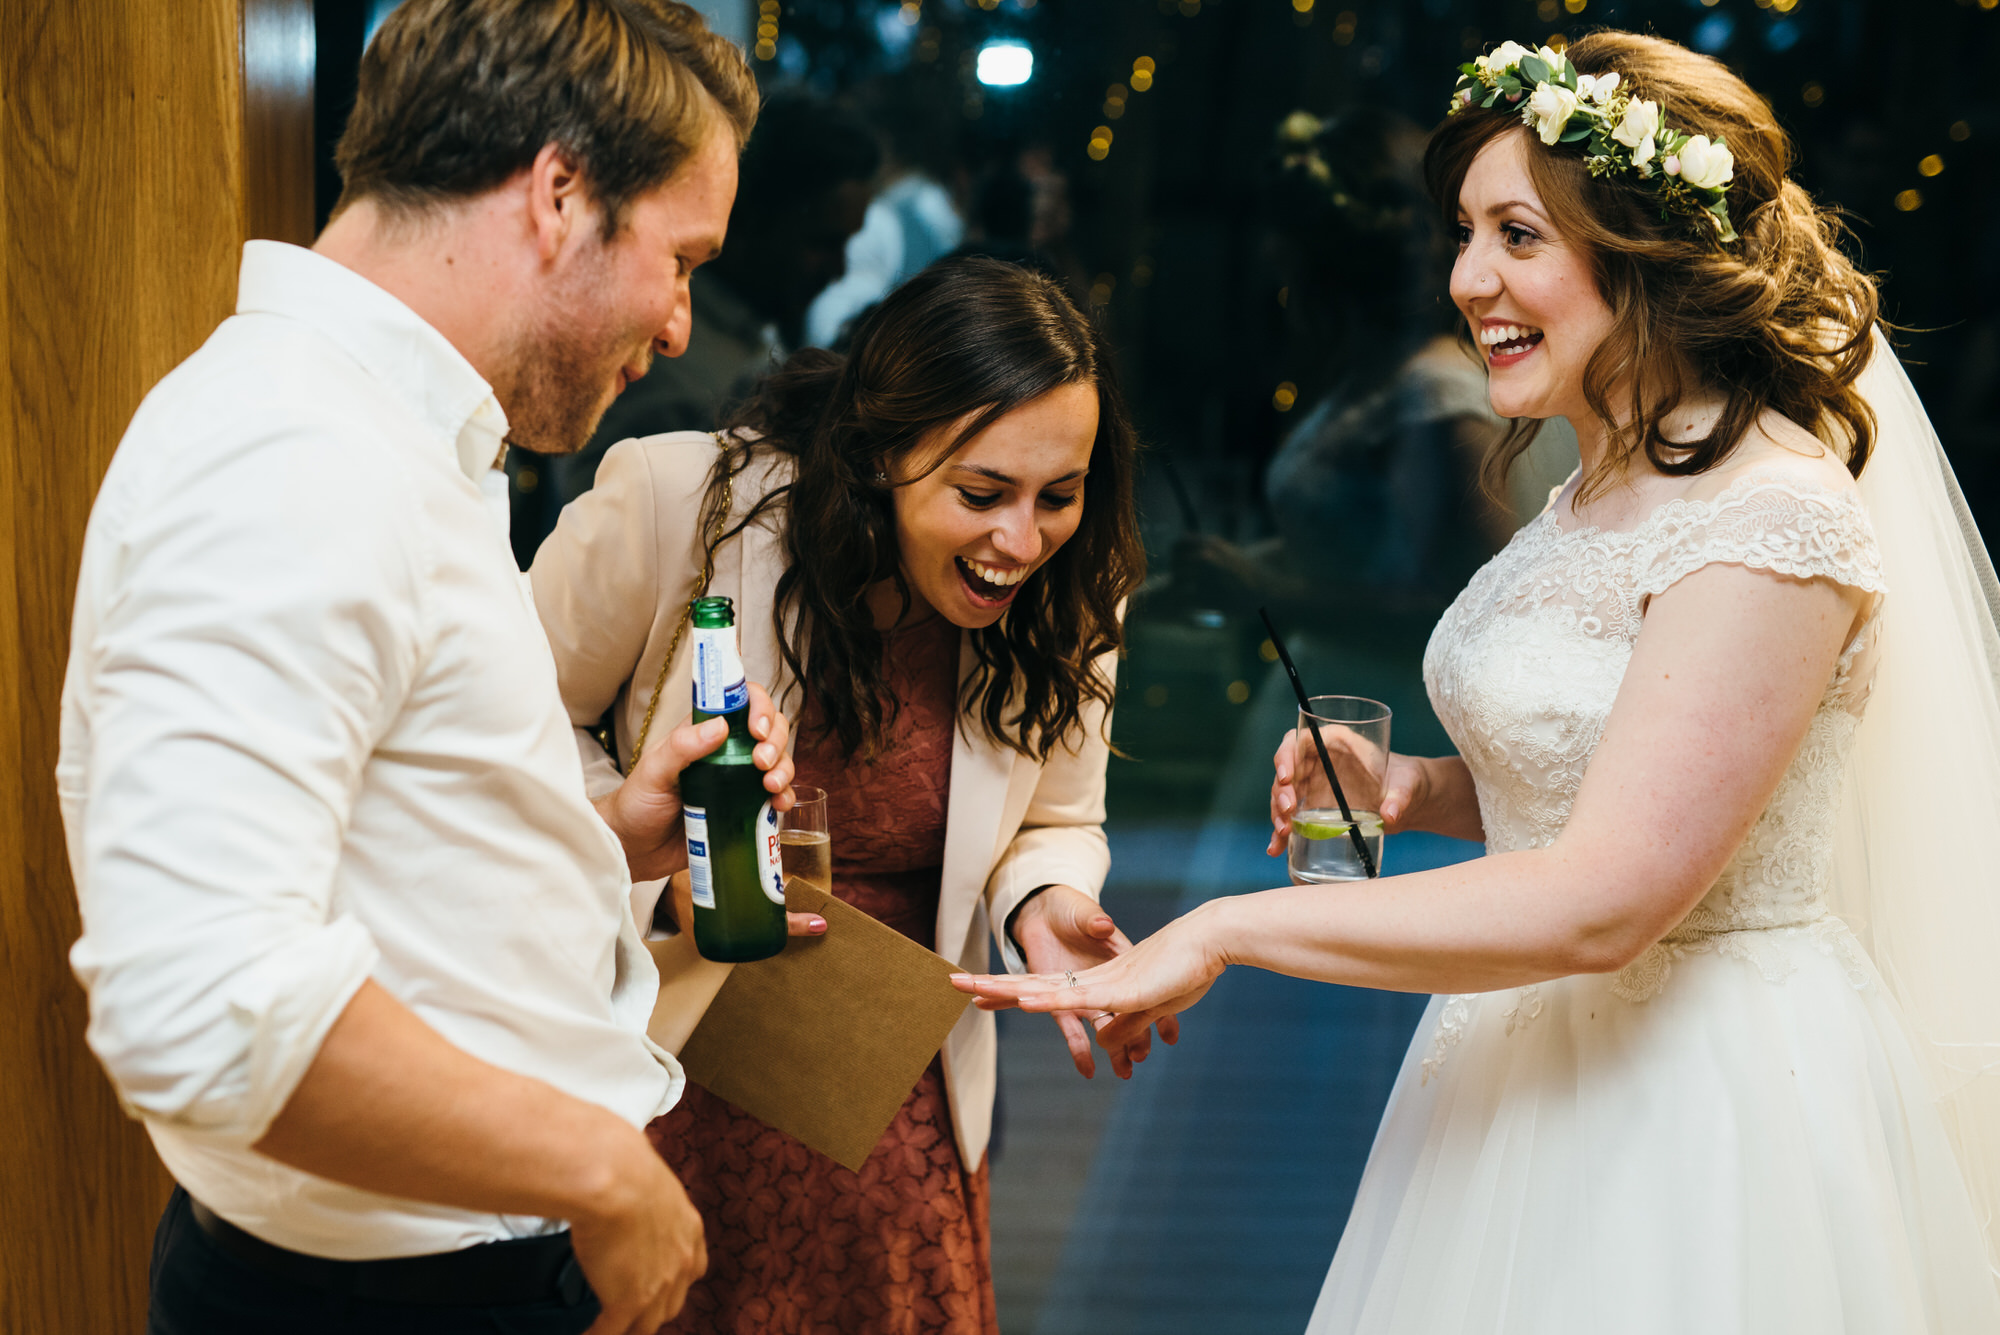 Bride shows ring at Colville hall wedding